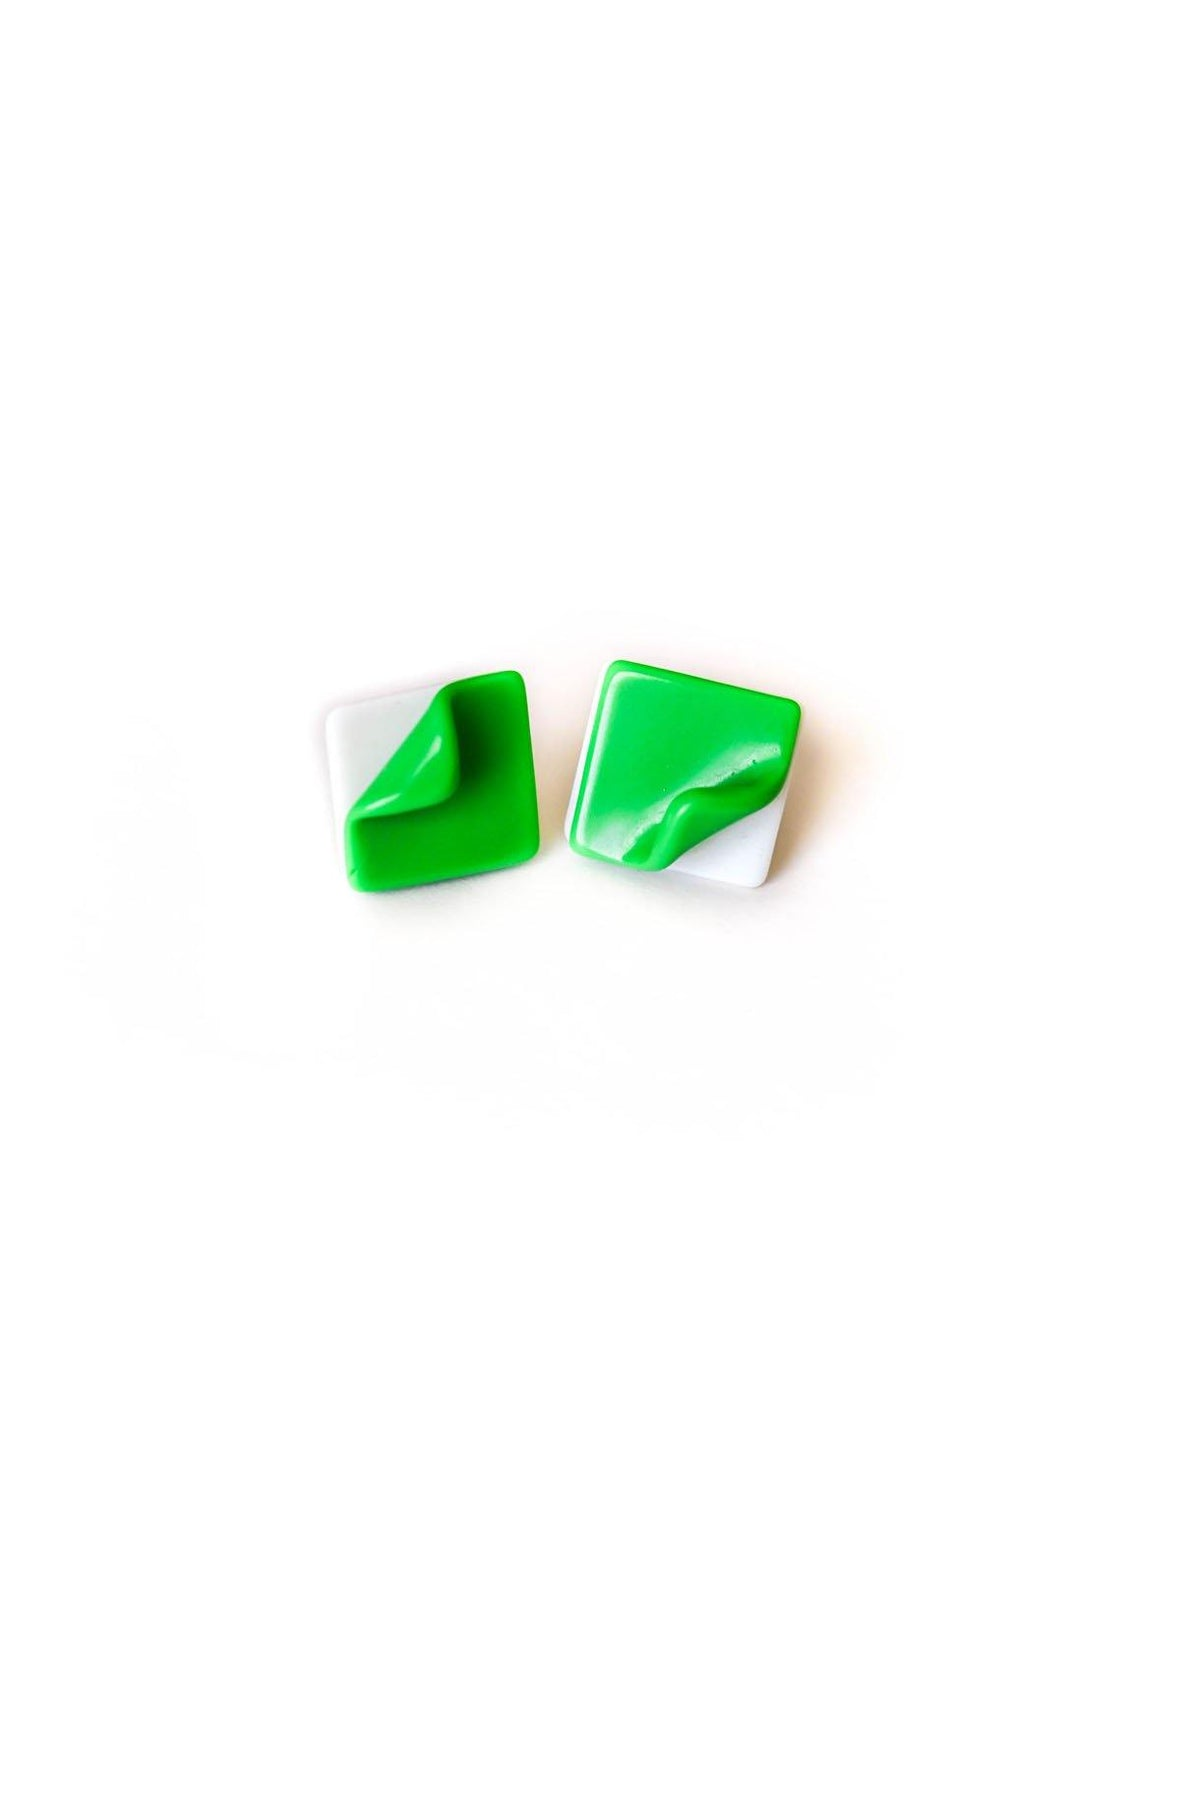 Green and White Folded Square Pierced Earrings - Sweet & Spark